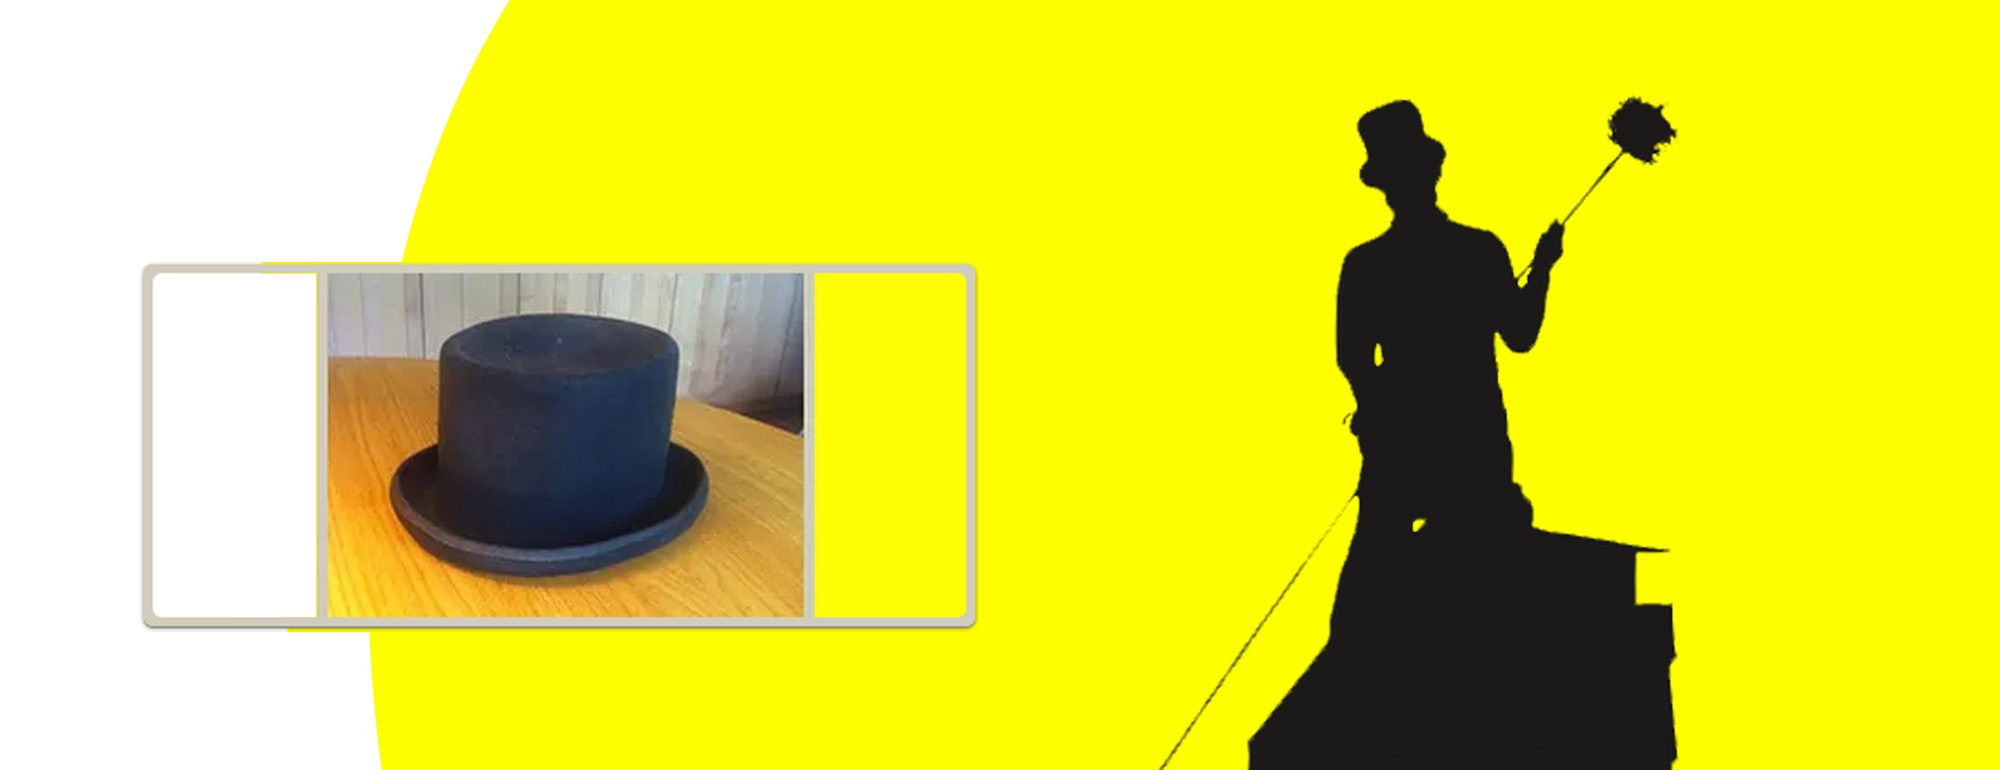 header with logo and top hat picture